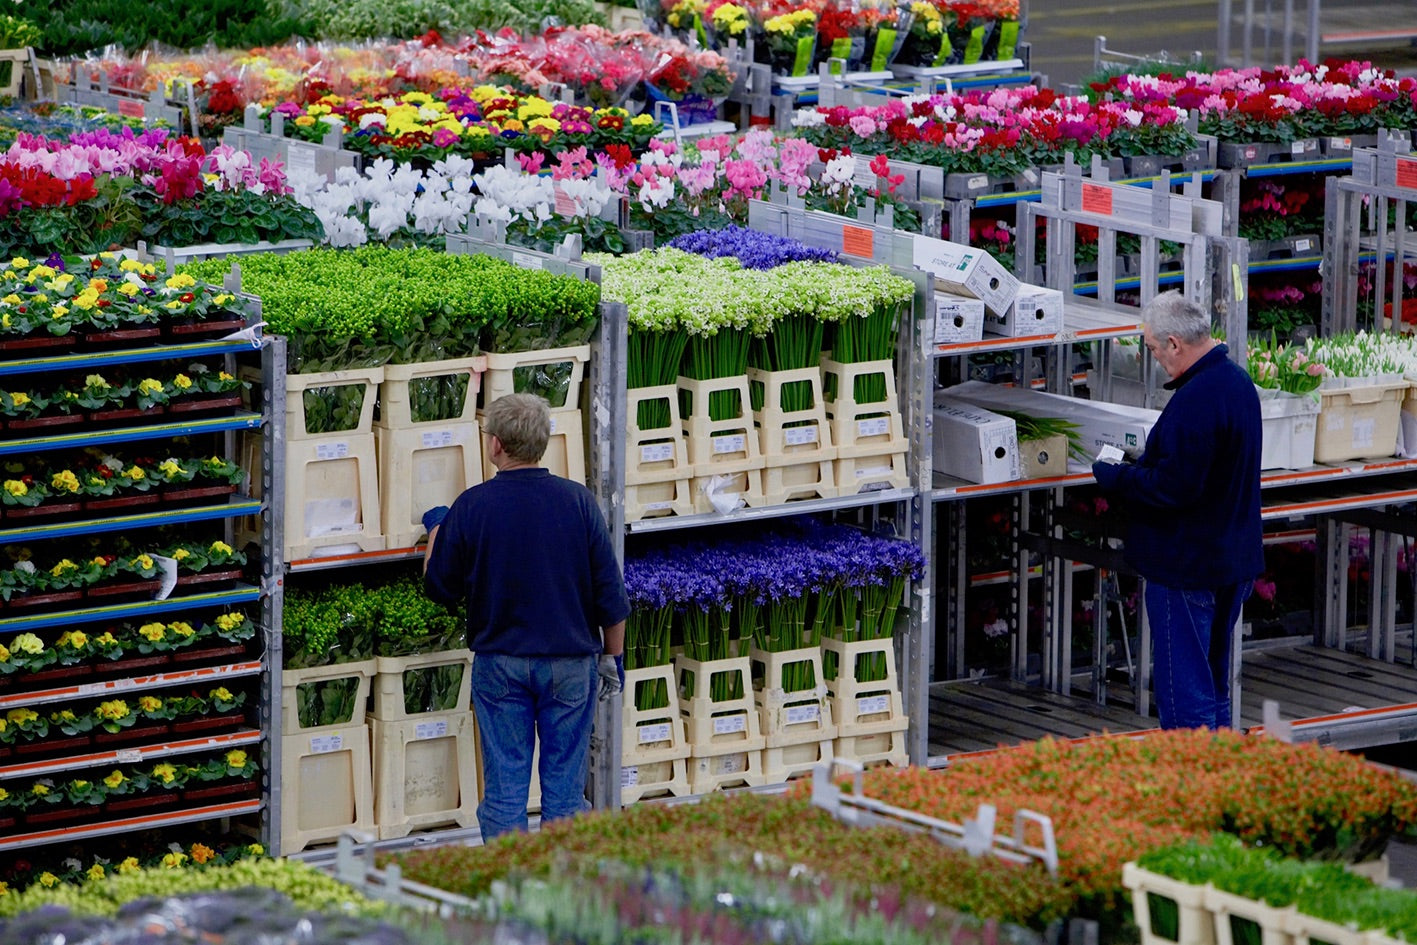 Visit the famous flower auction